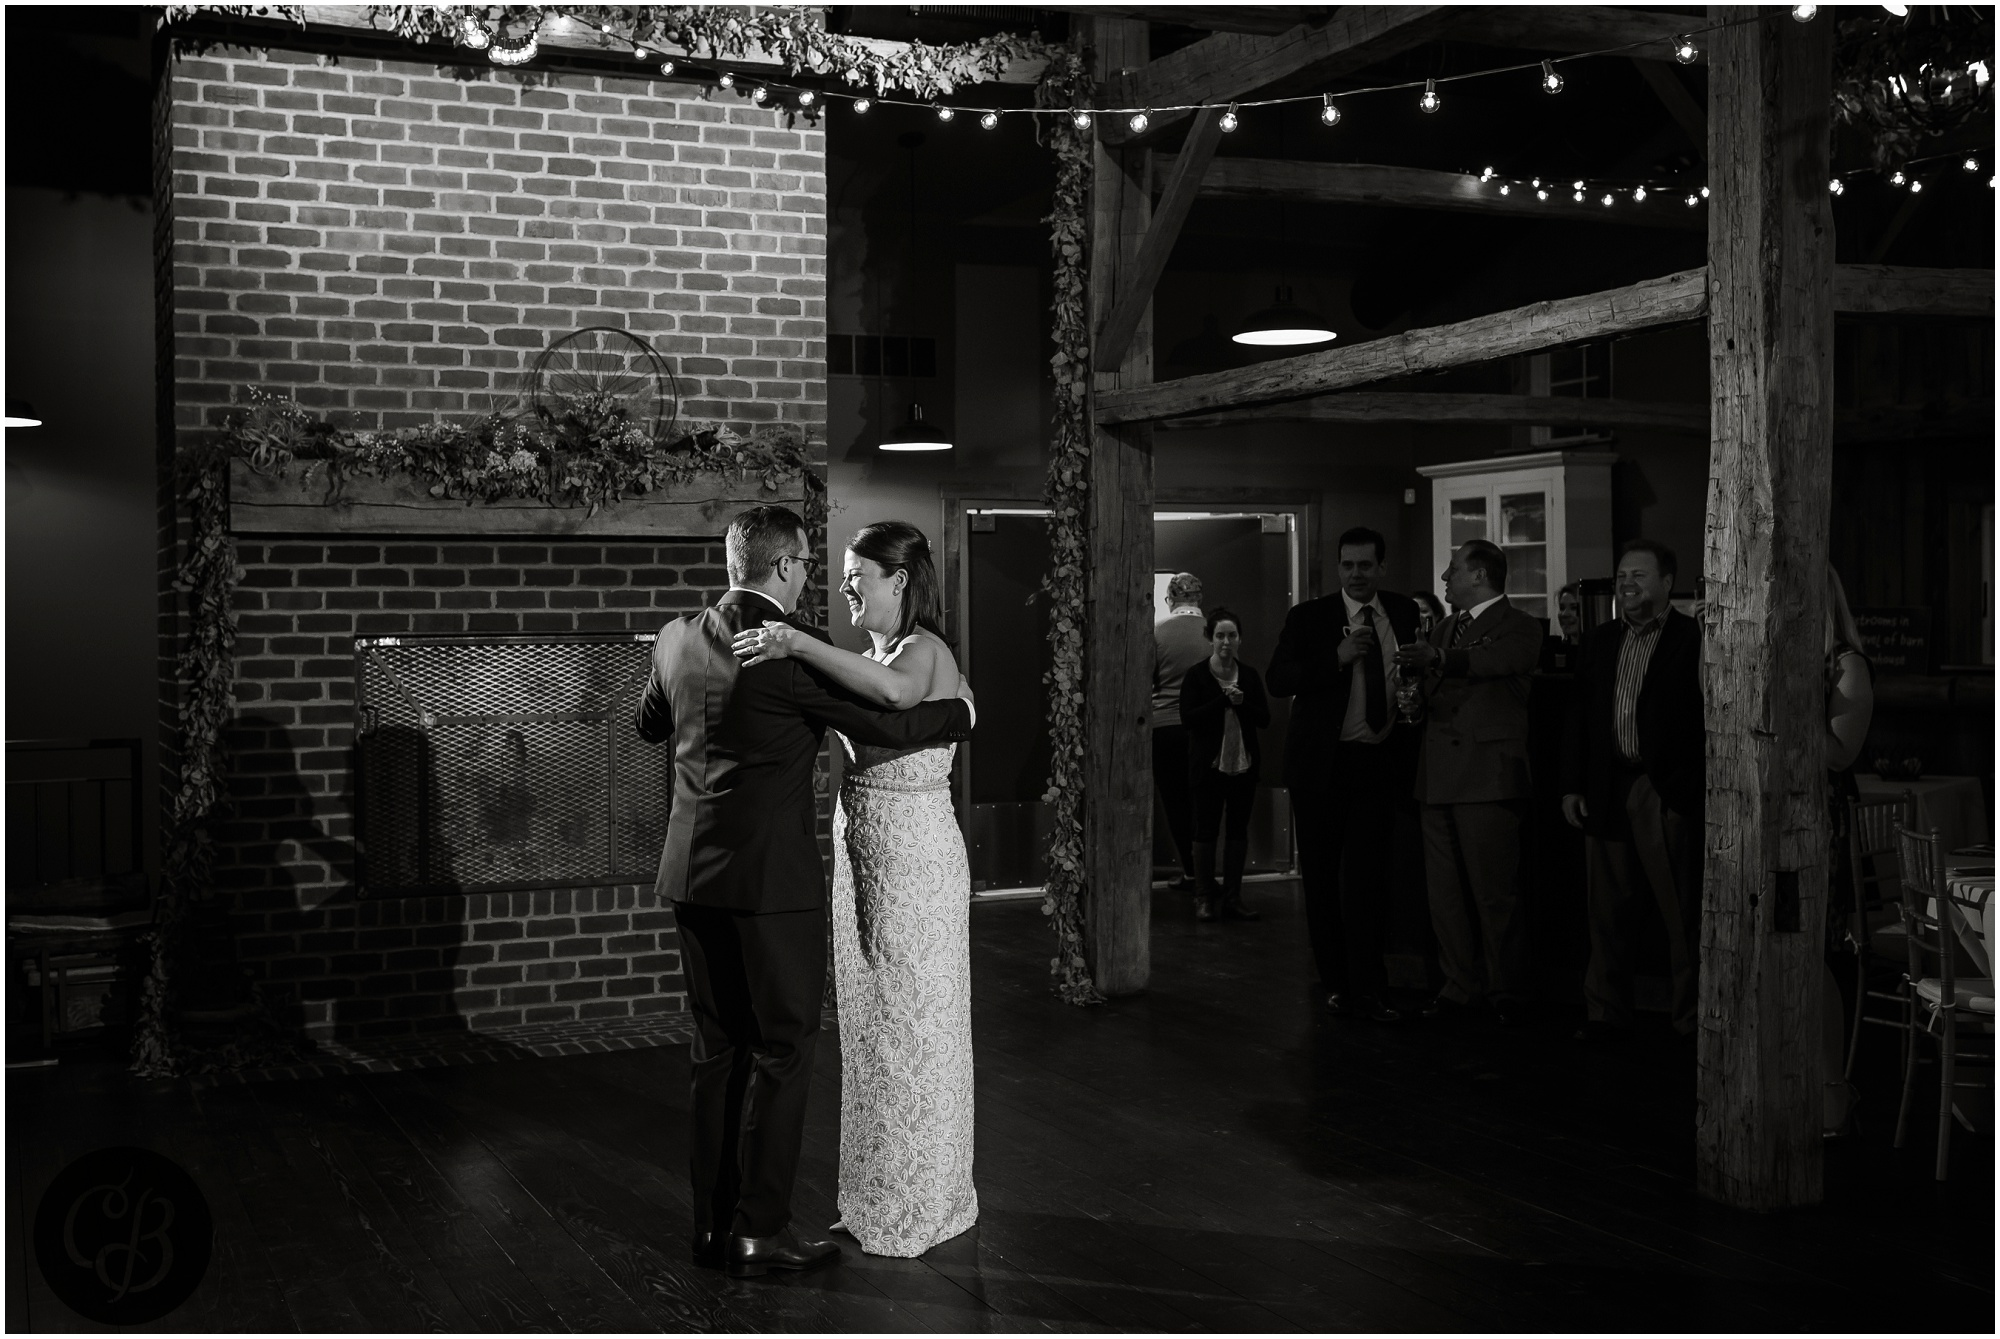 zingermans-intimate-wedding_0035.jpg